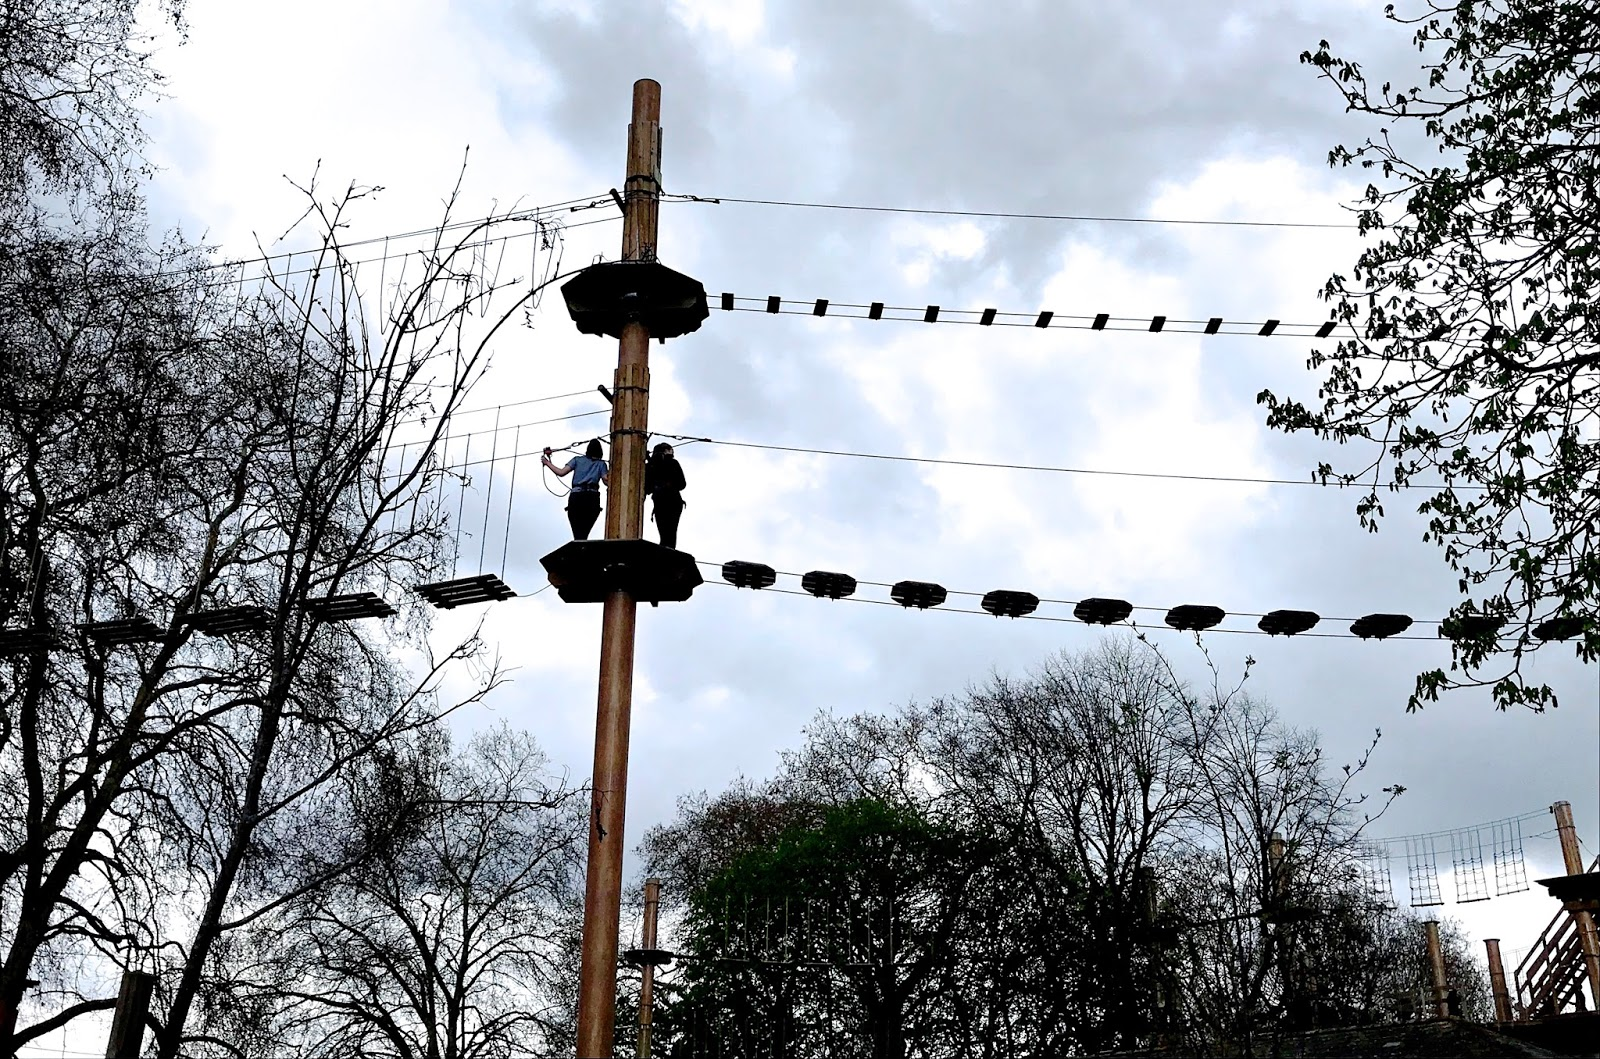 Treetop Ropes Course in Battersea Park